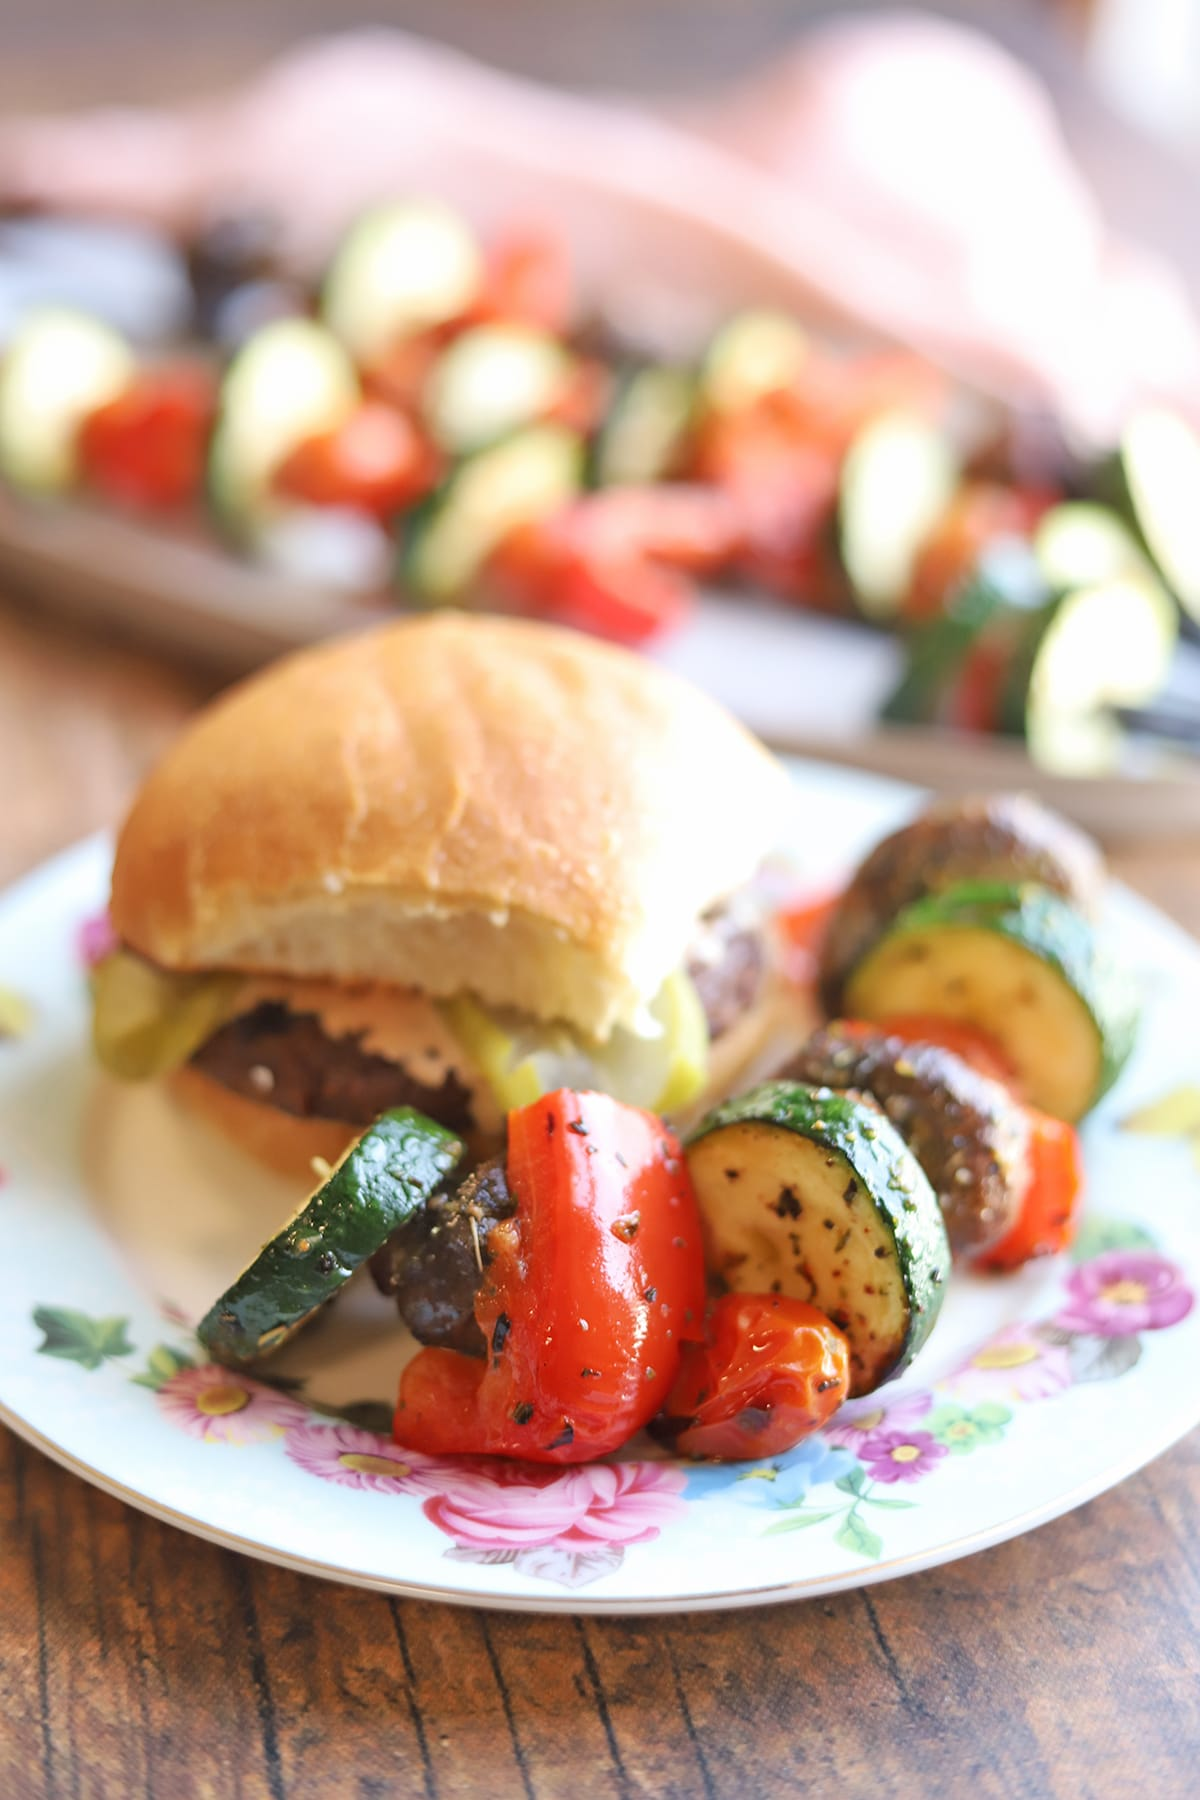 Burger on plate with grilled vegetables.